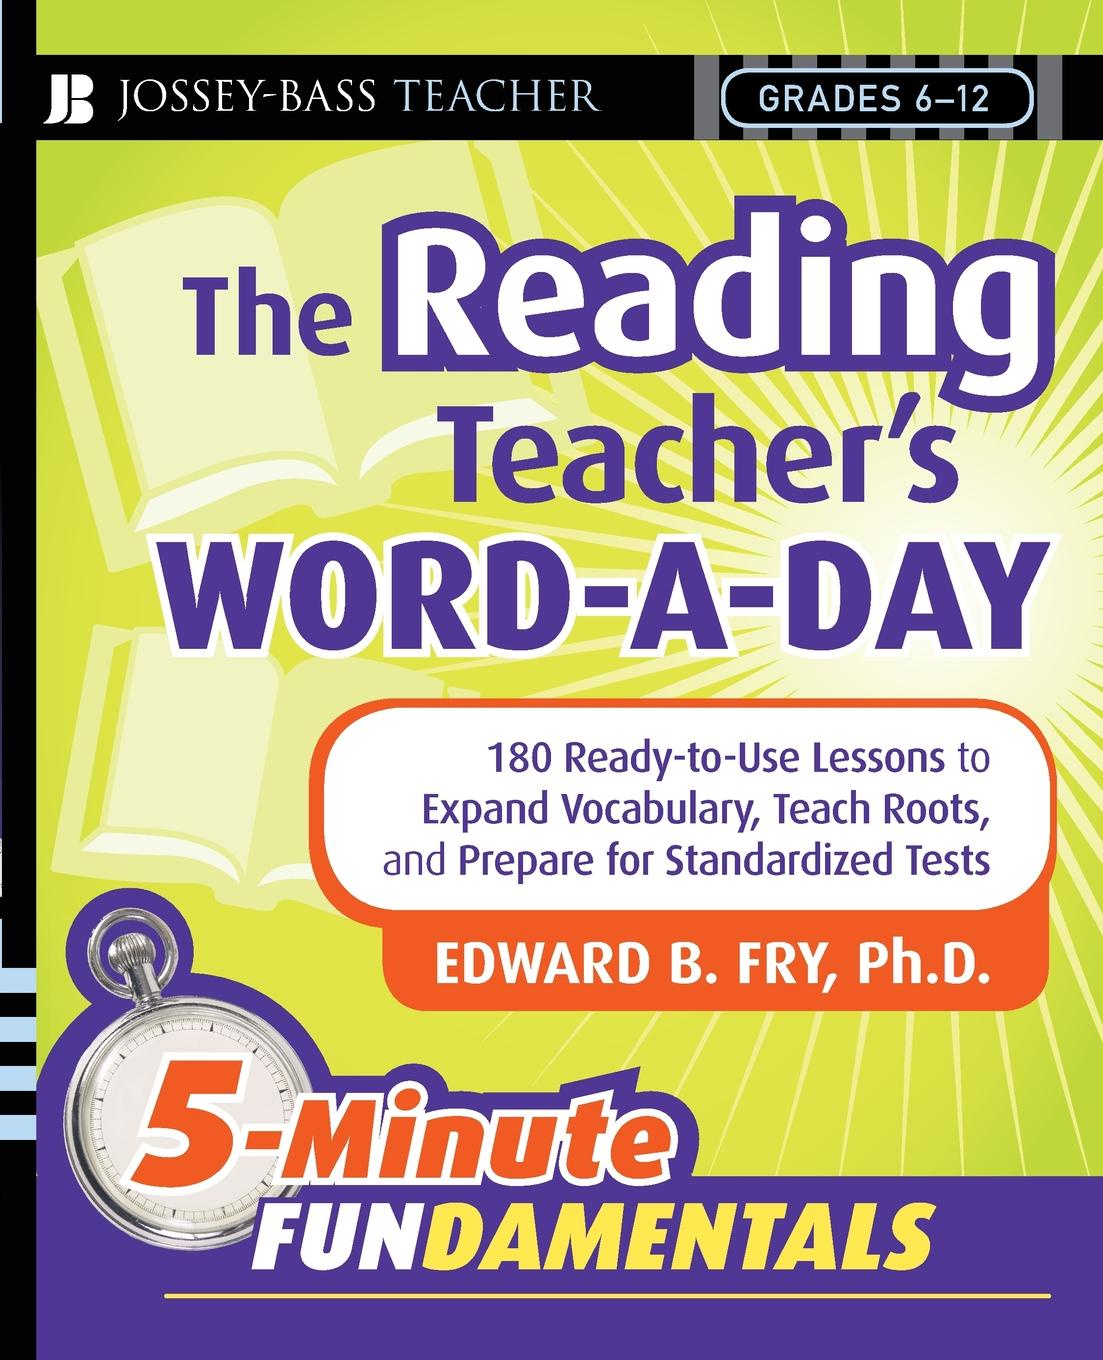 Edward Bernard Fry The Reading Teacher's Word-A-Day Grades 6-12. 180 Ready-To-Use Lessons to Expand Vocabulary, Teach Roots, and Prepare for Standardized Tests dwight edward knight lessons through the word instructors edition